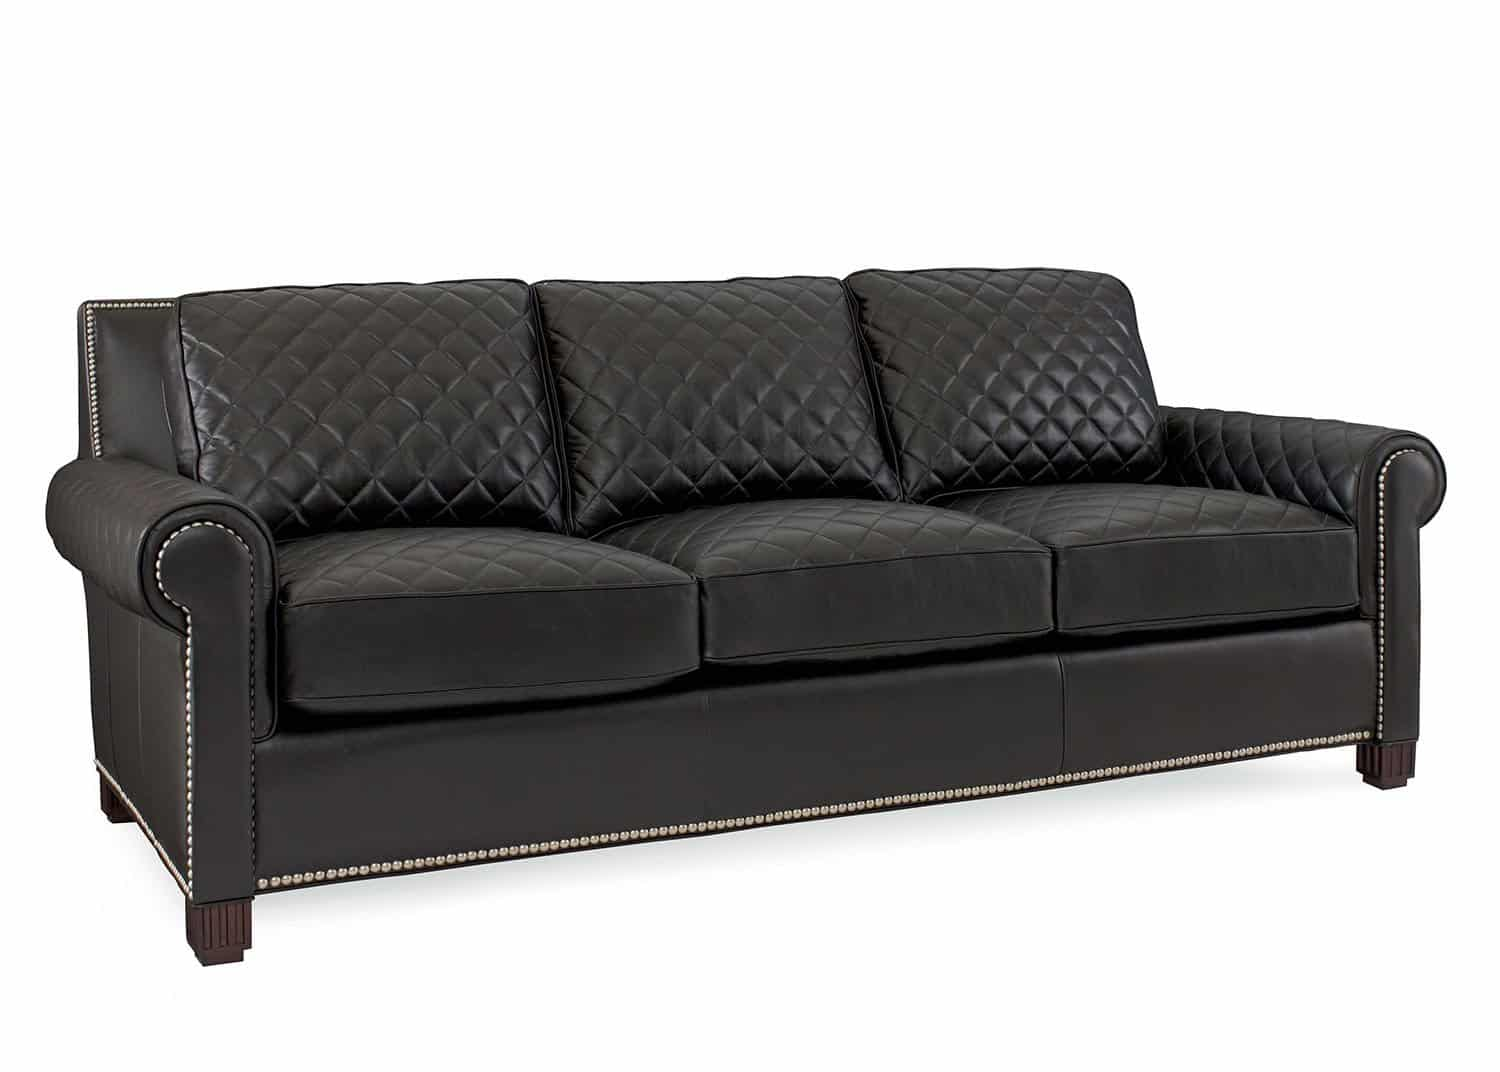 Coco Black Leather Sofa Mobilart Decor High End Furniture